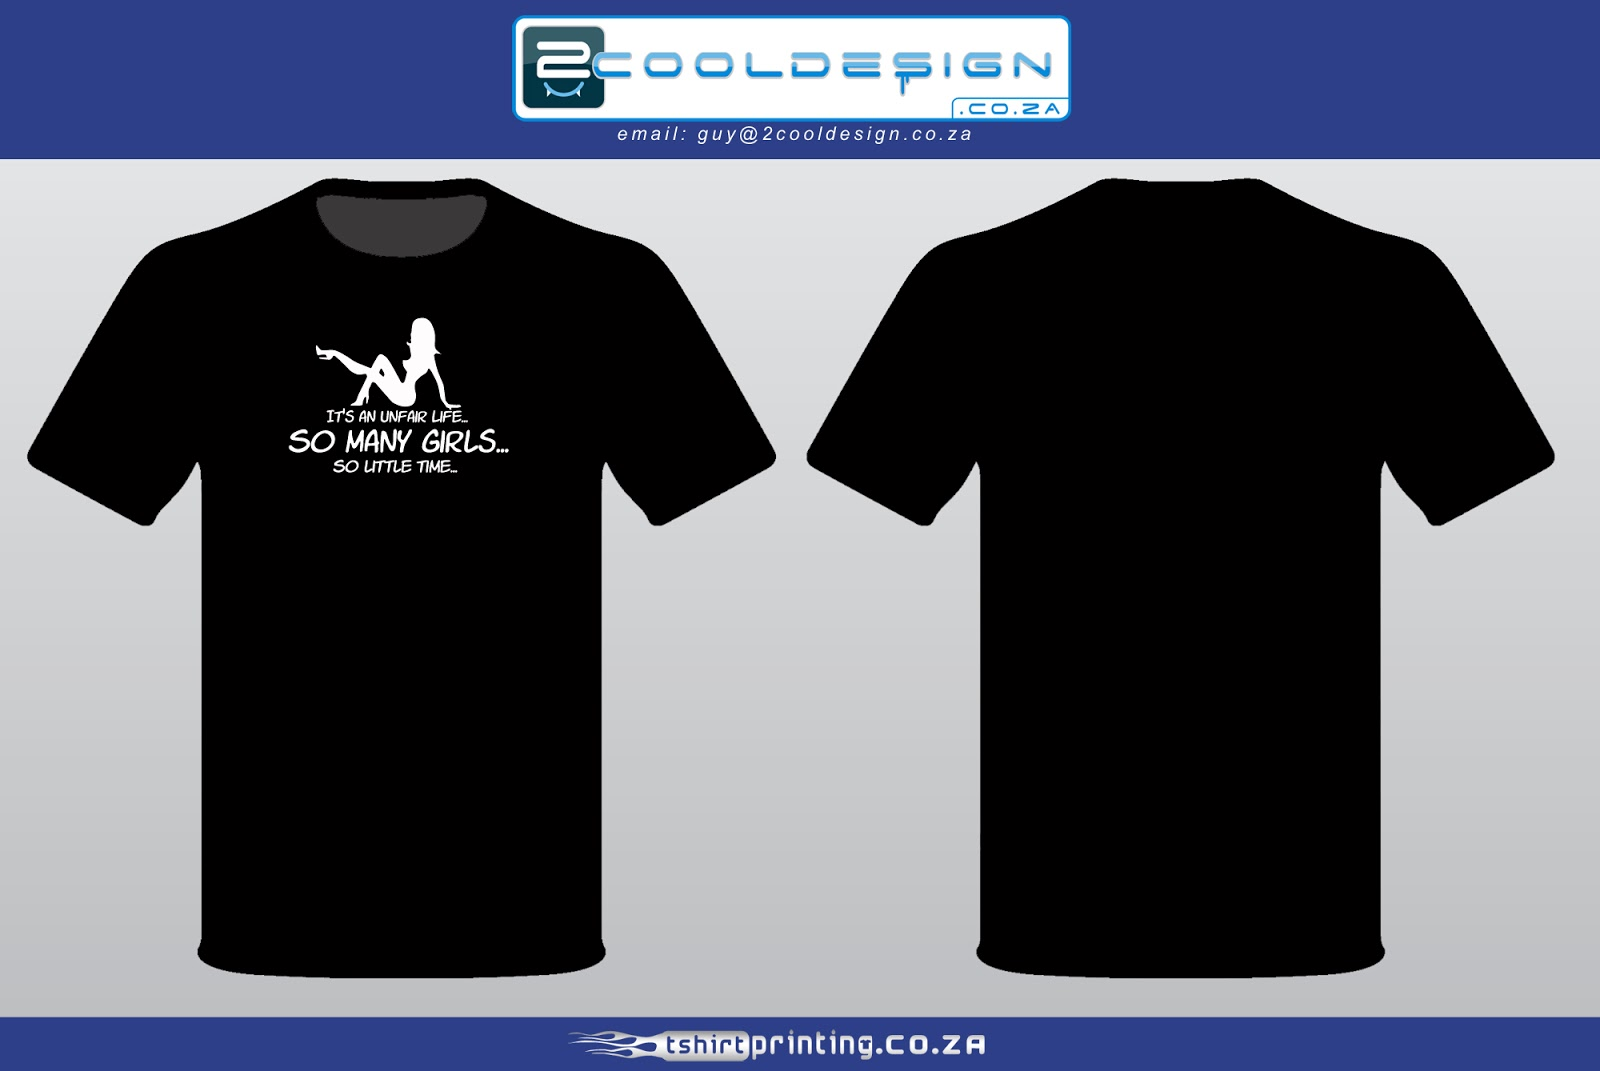 Company T Shirt Design Ideas t shirt design for muay thai fighter based in russia company fightlab Tshirt Printing